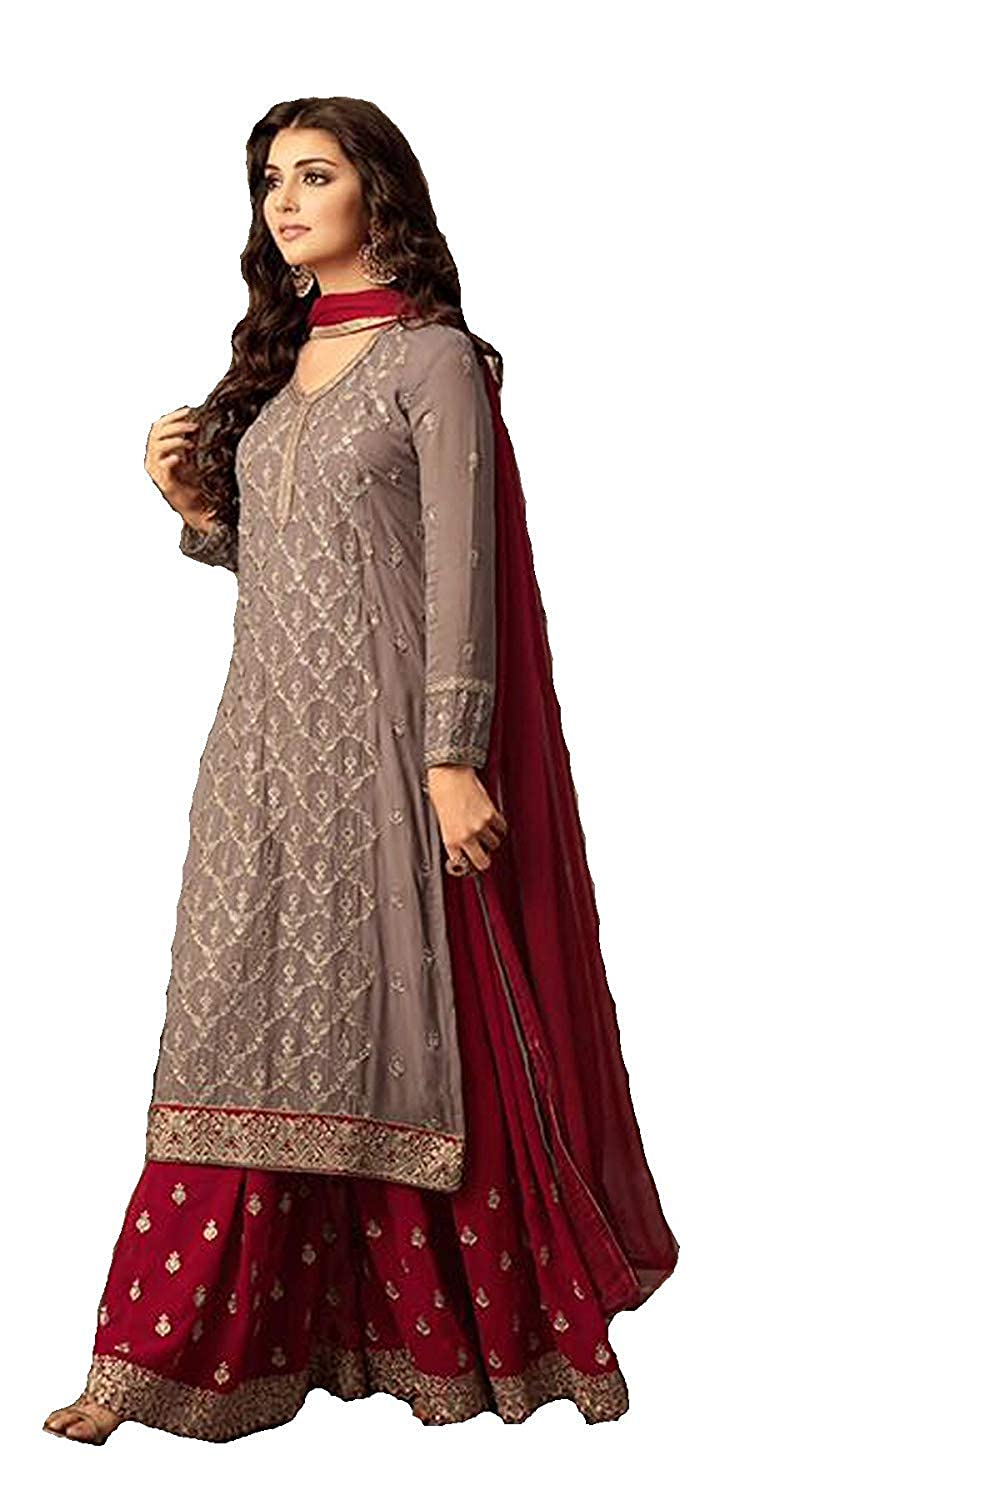 Range Of India Women Salwar Suit with Duppata